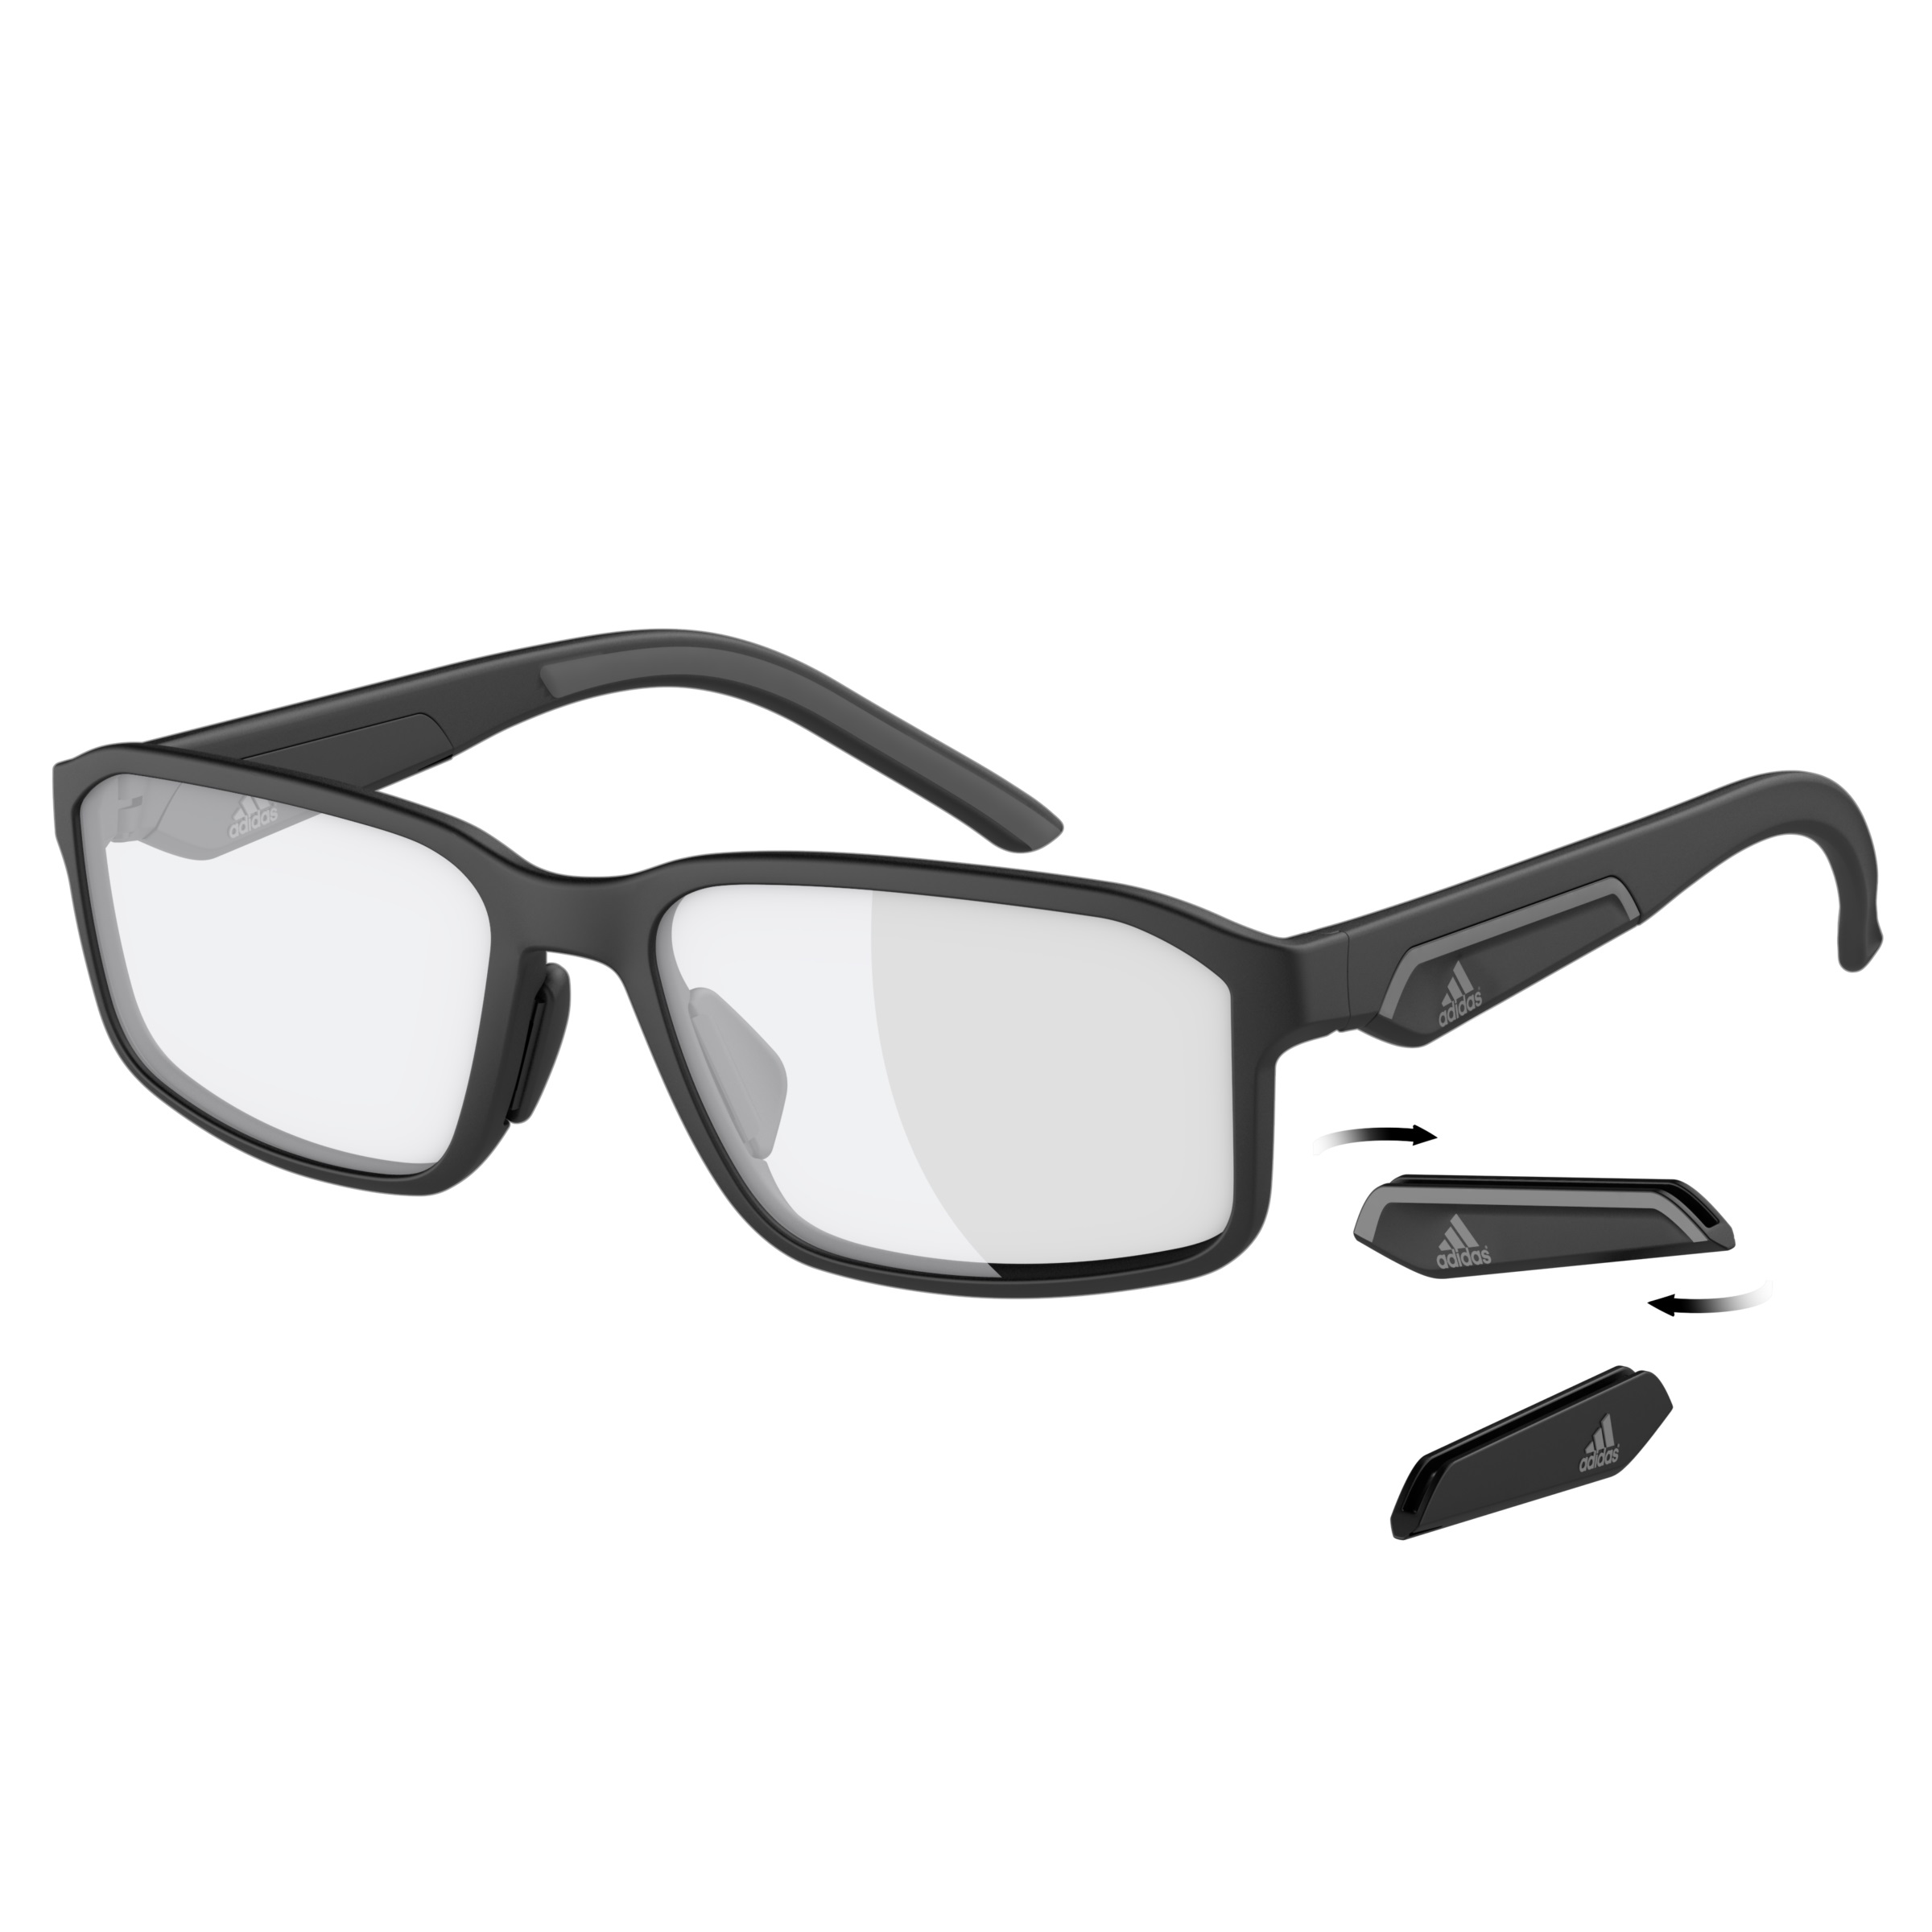 EO-Executive Optical launches new convertor models from adidas ...